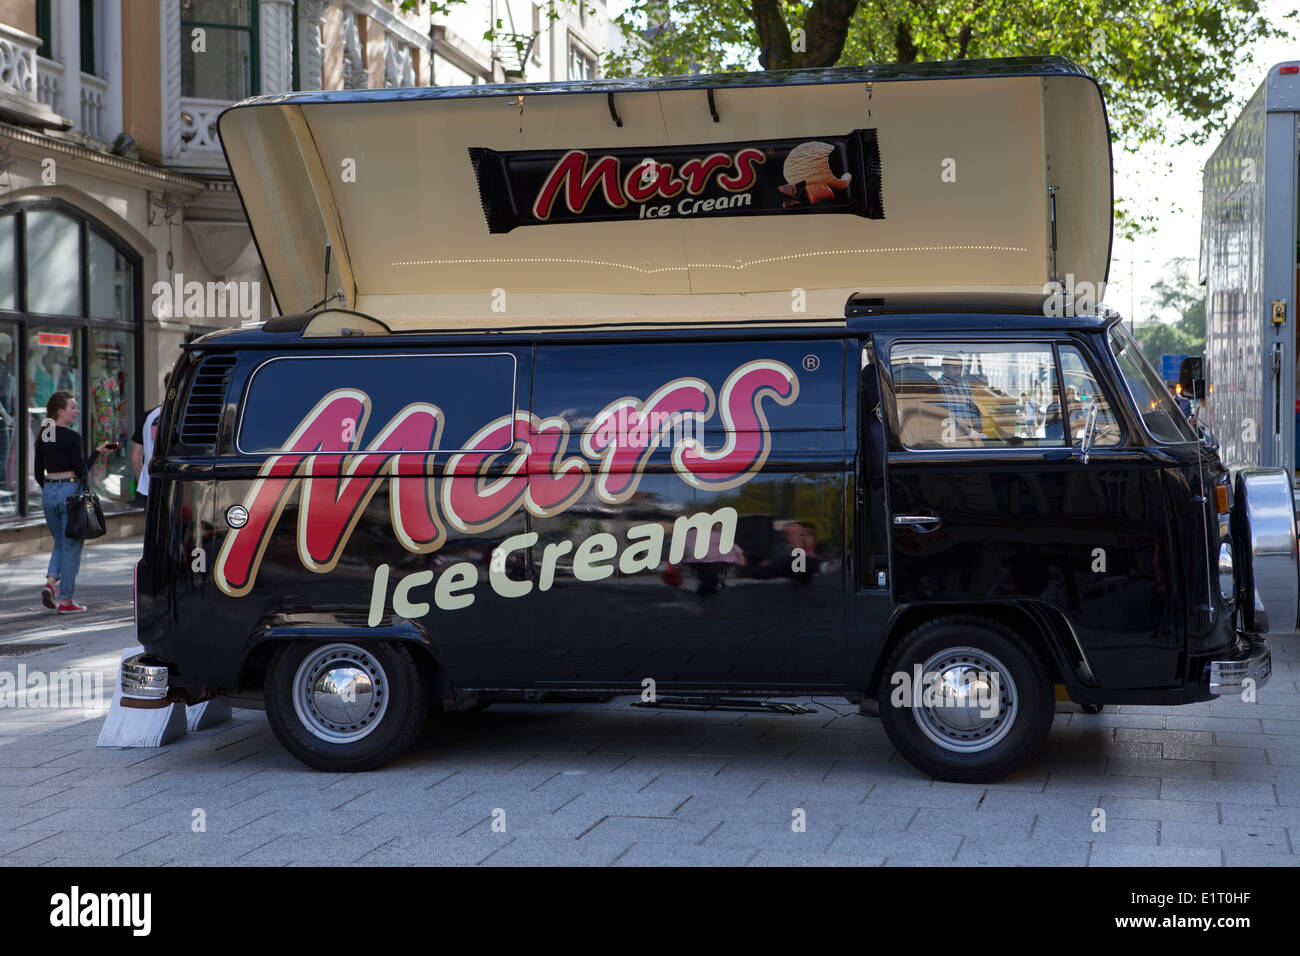 Great Mars Ice Cream Promotional VW Camper Type Vehicle In Cardiff, Wales, UK    Stock